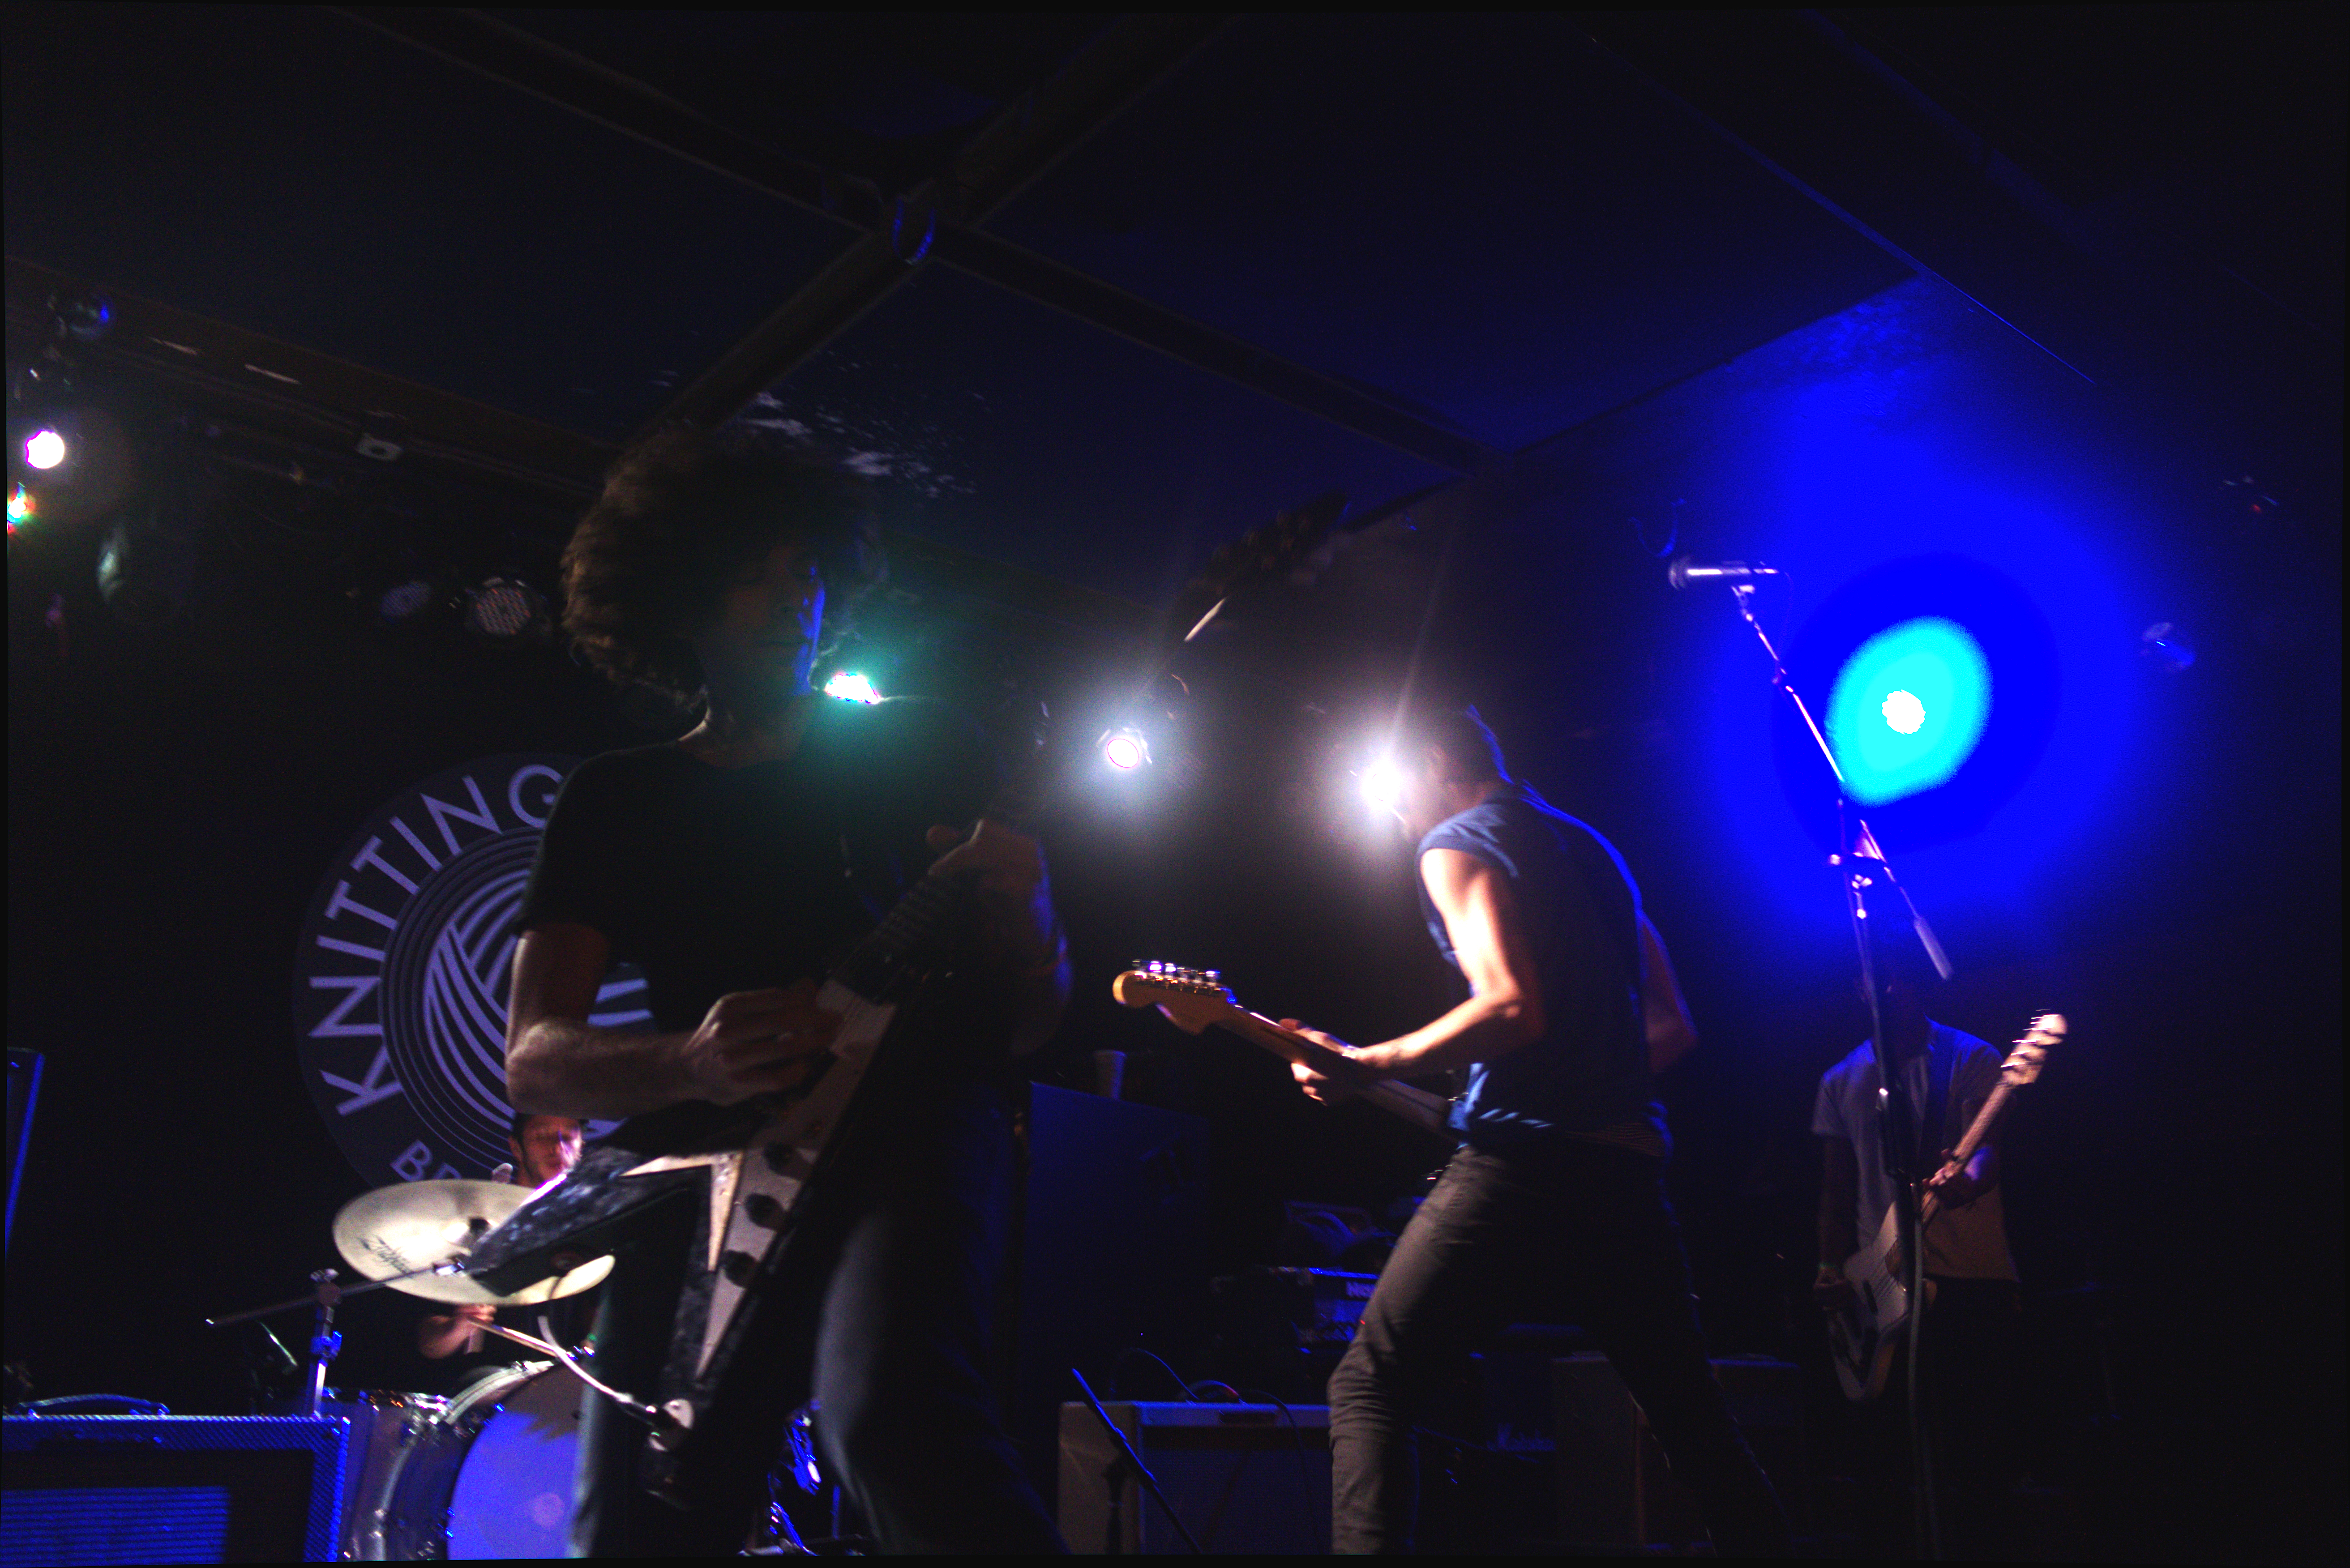 LIVE REVIEW: Honduras @ The Knitting Factory